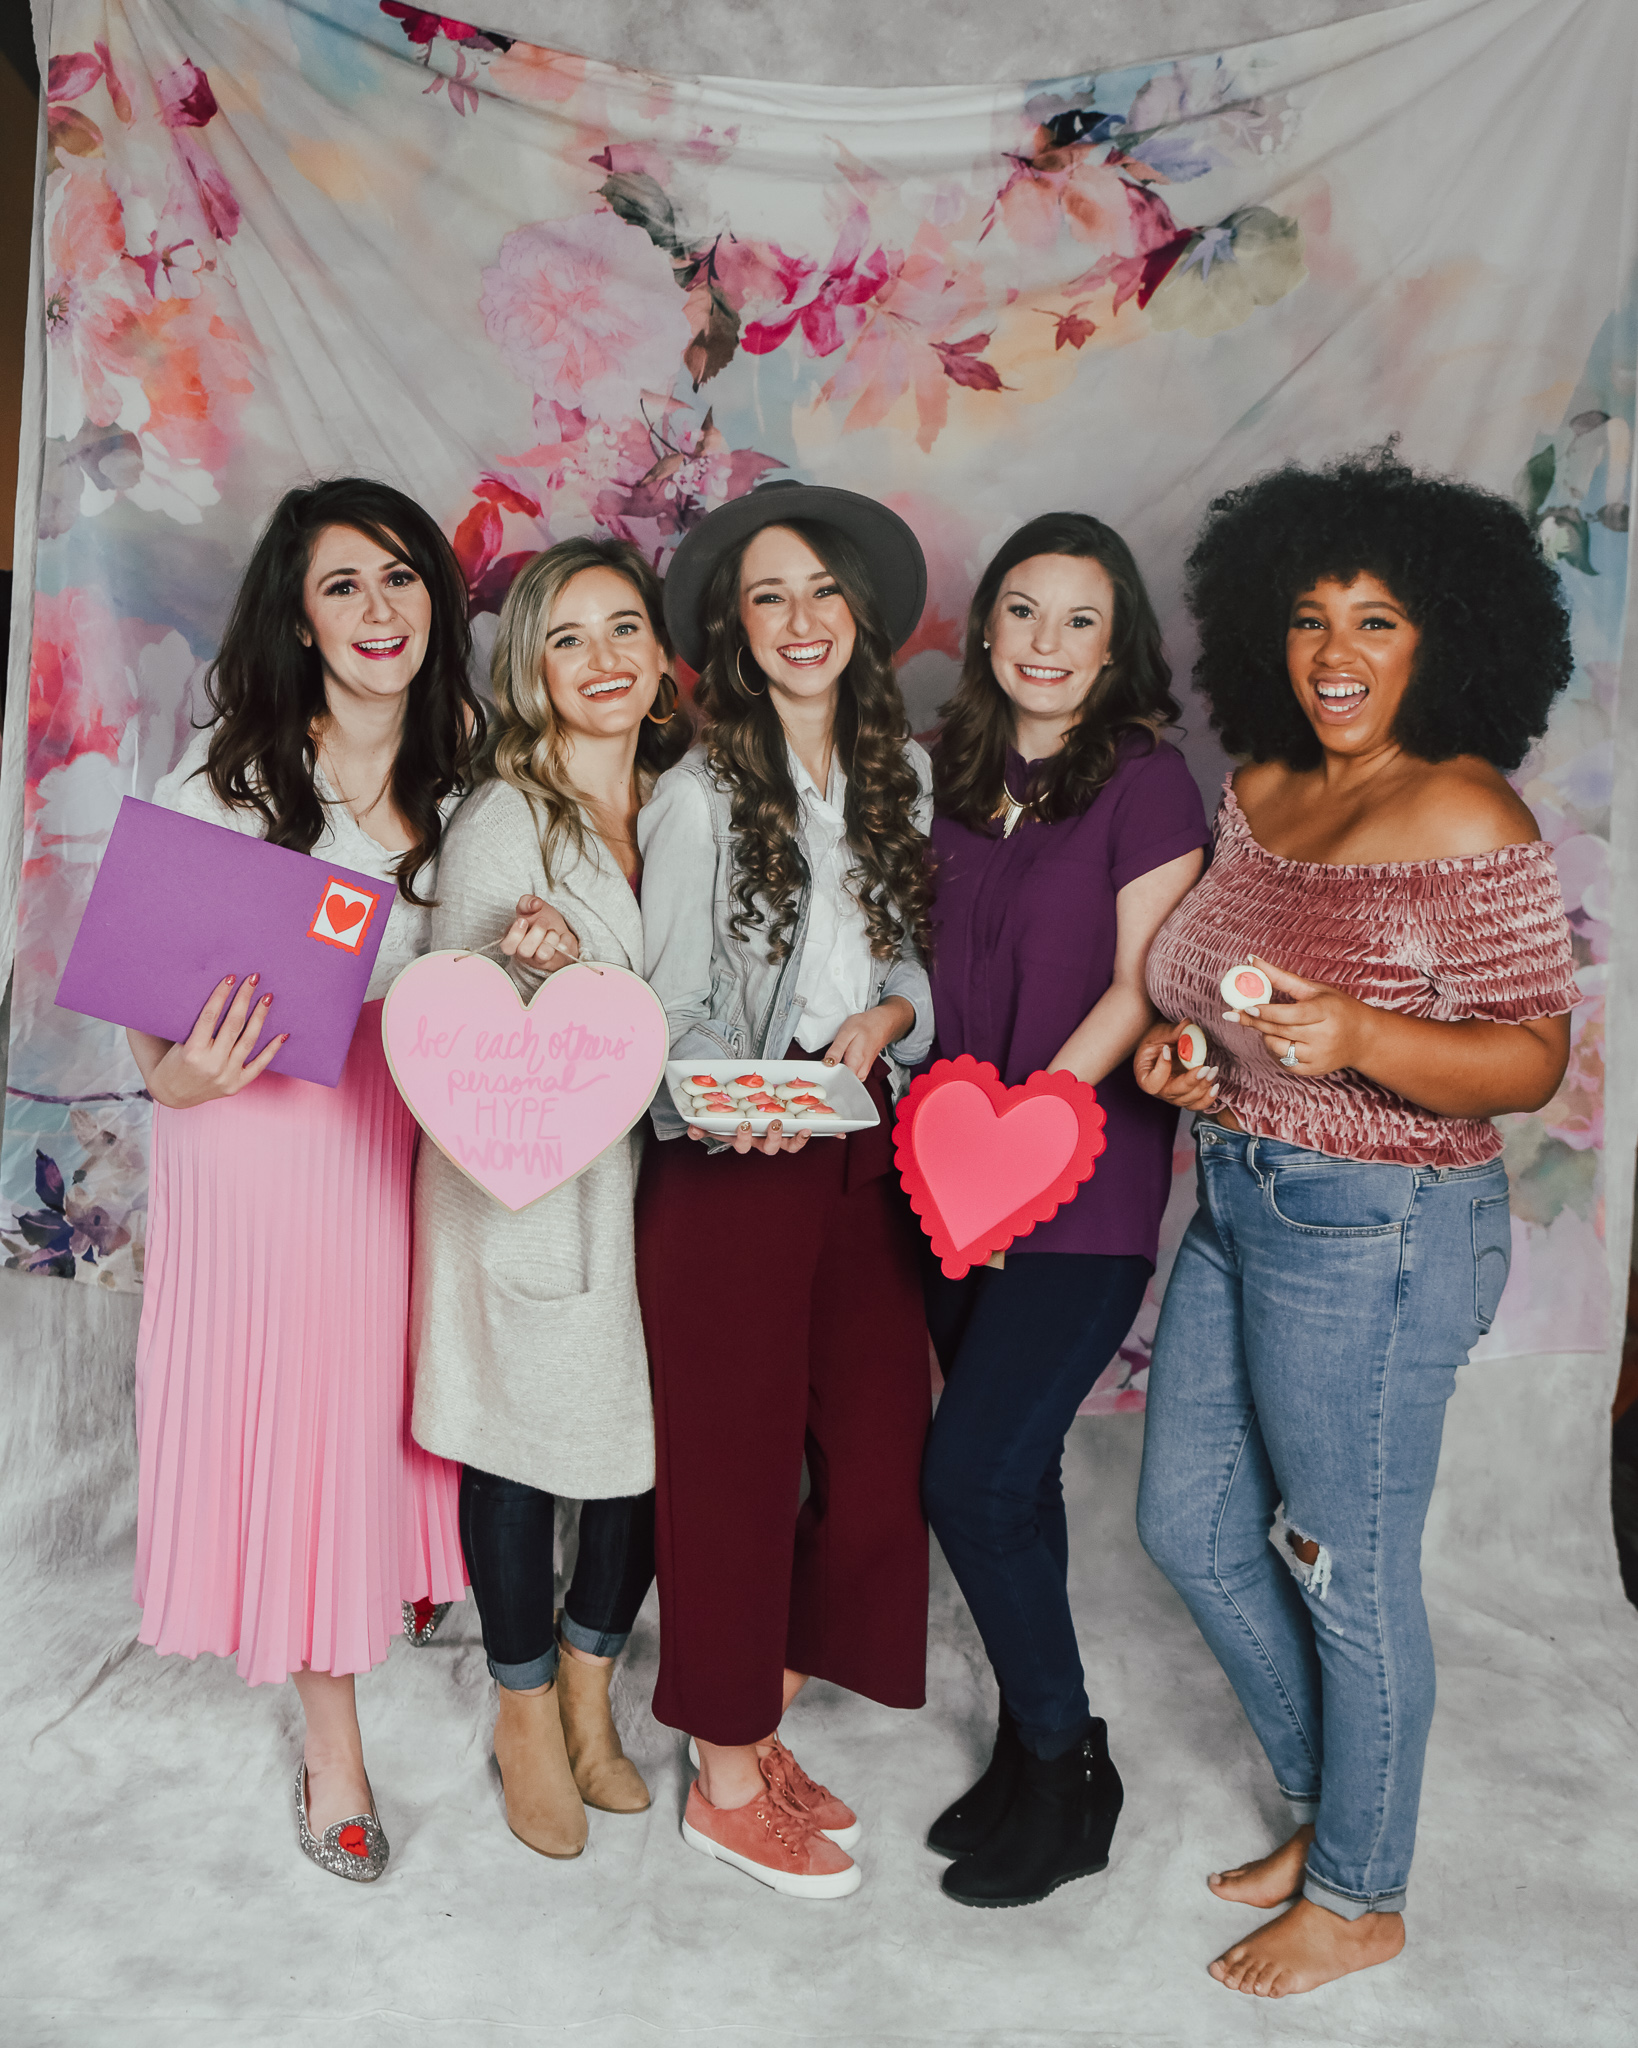 5-IDEAS-FOR-HOSTING-THE-ULTIMATE-GALENTINE'S-DAY-PARTY-3.jpg